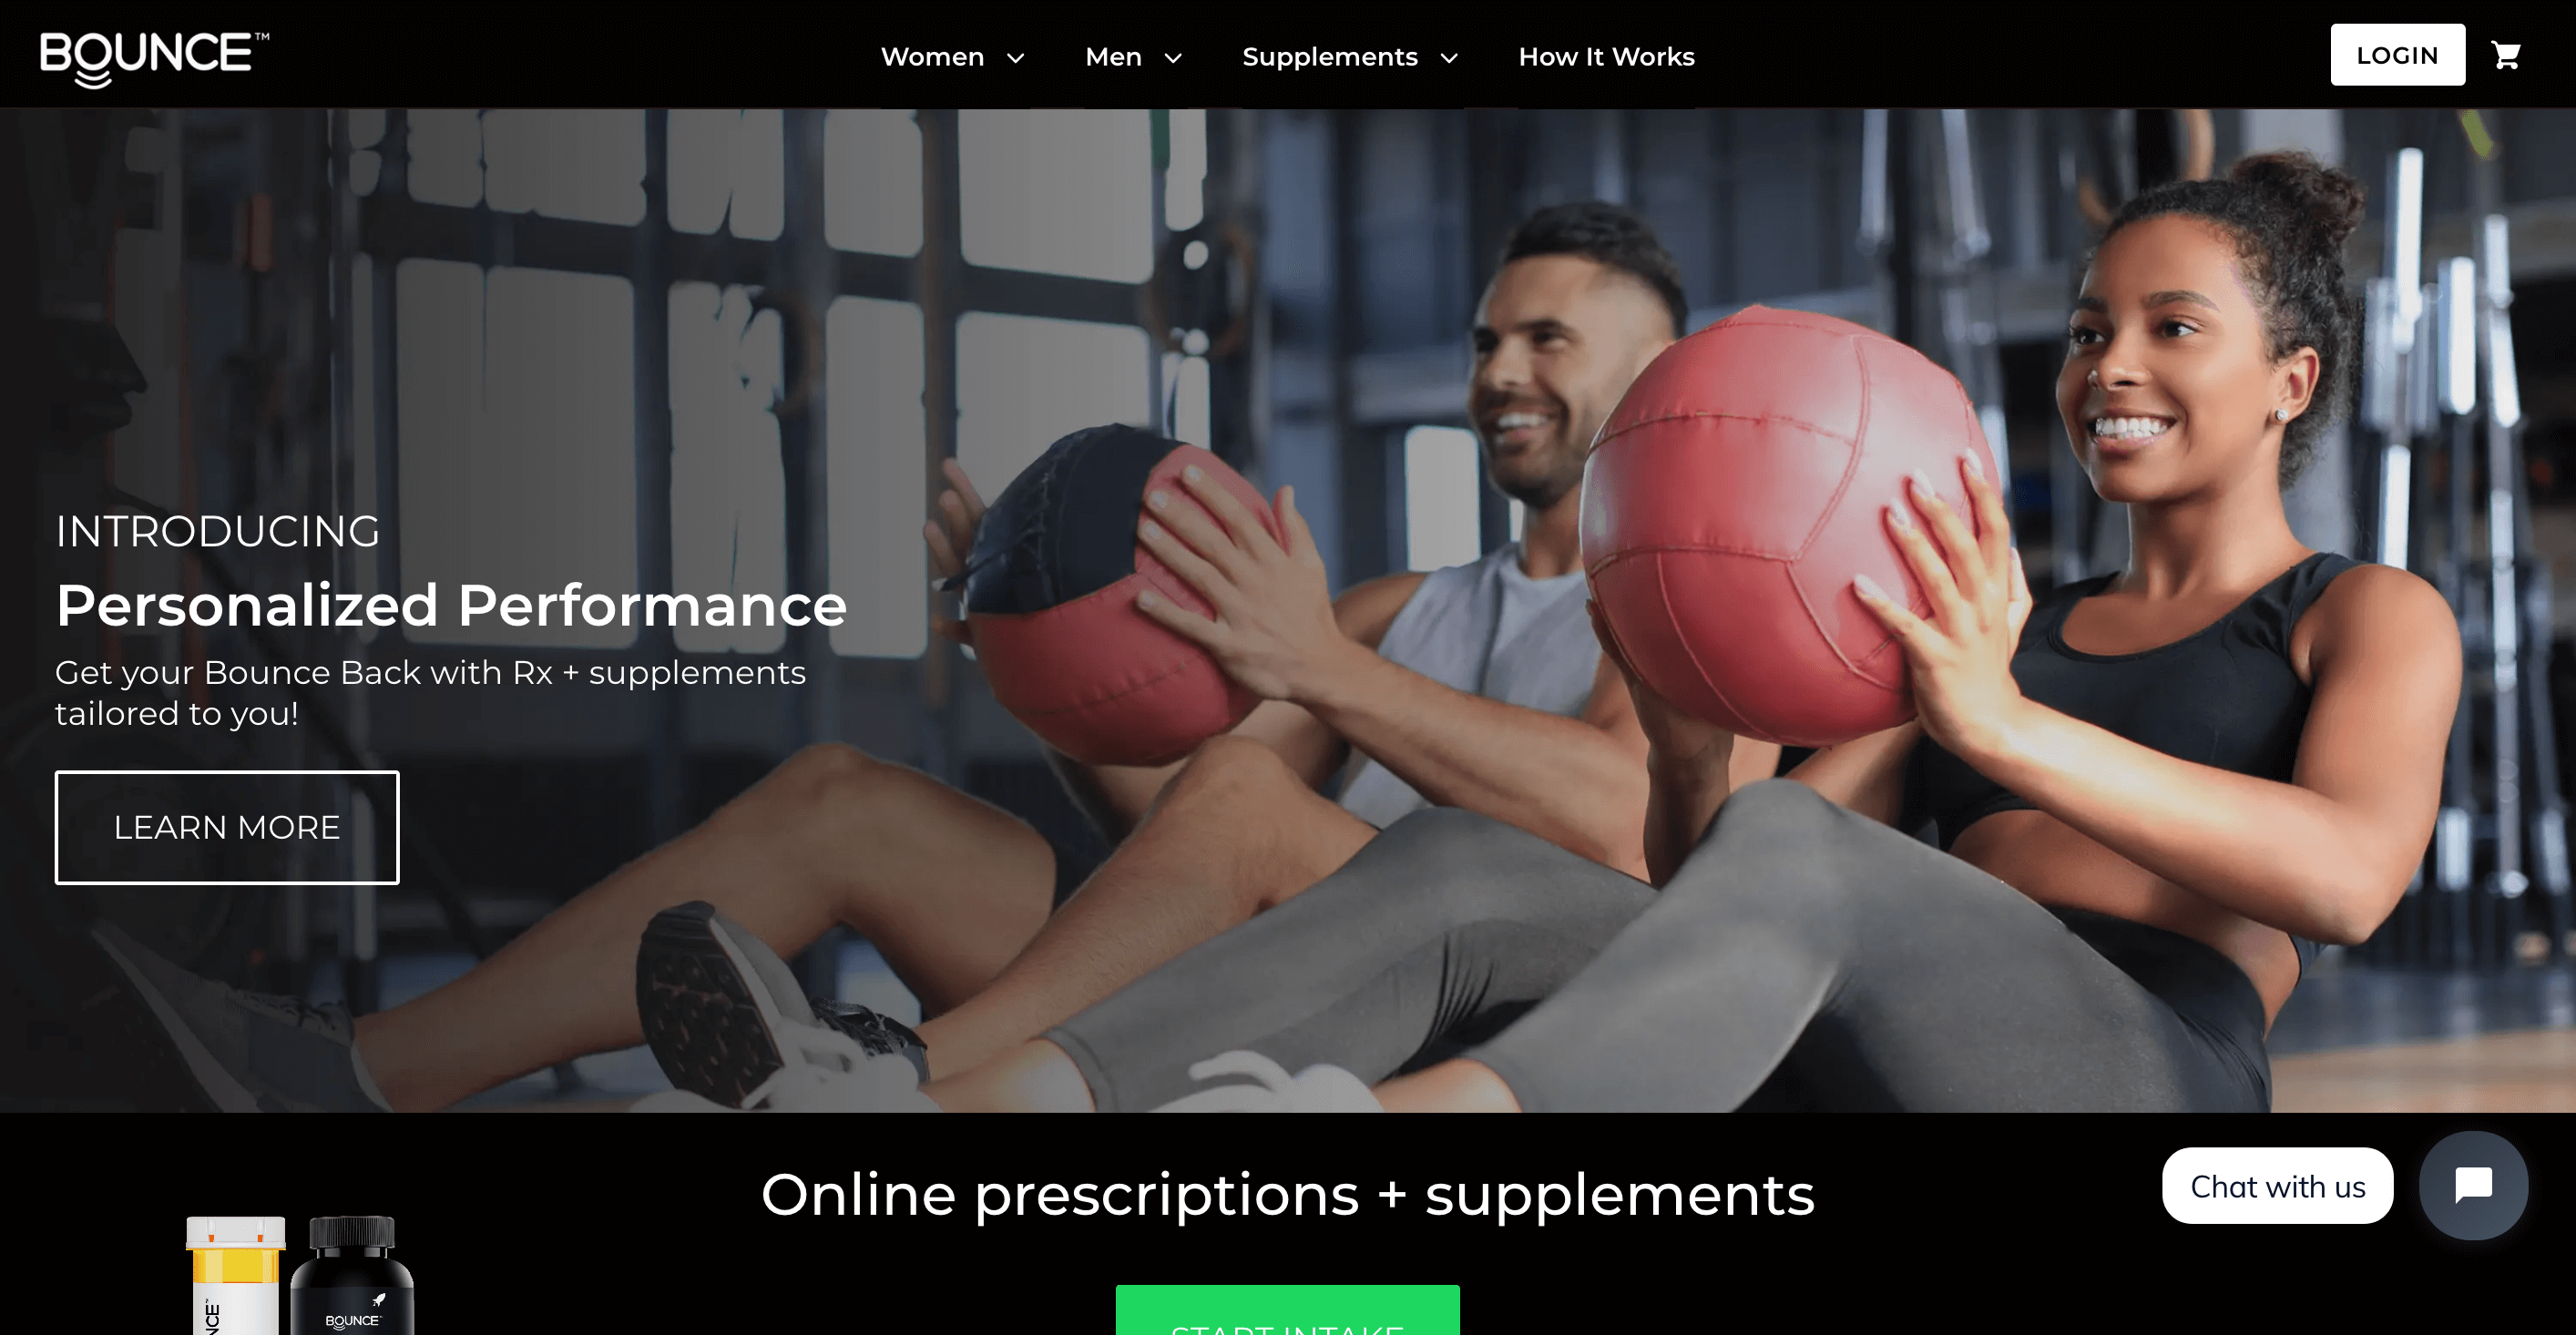 Home page for Bounce Health in the US serving customers who would like medical services and products for sexual performance. Banner image with a smiling black woman holding a red medicine ball and a white man doing the same behind behind her.